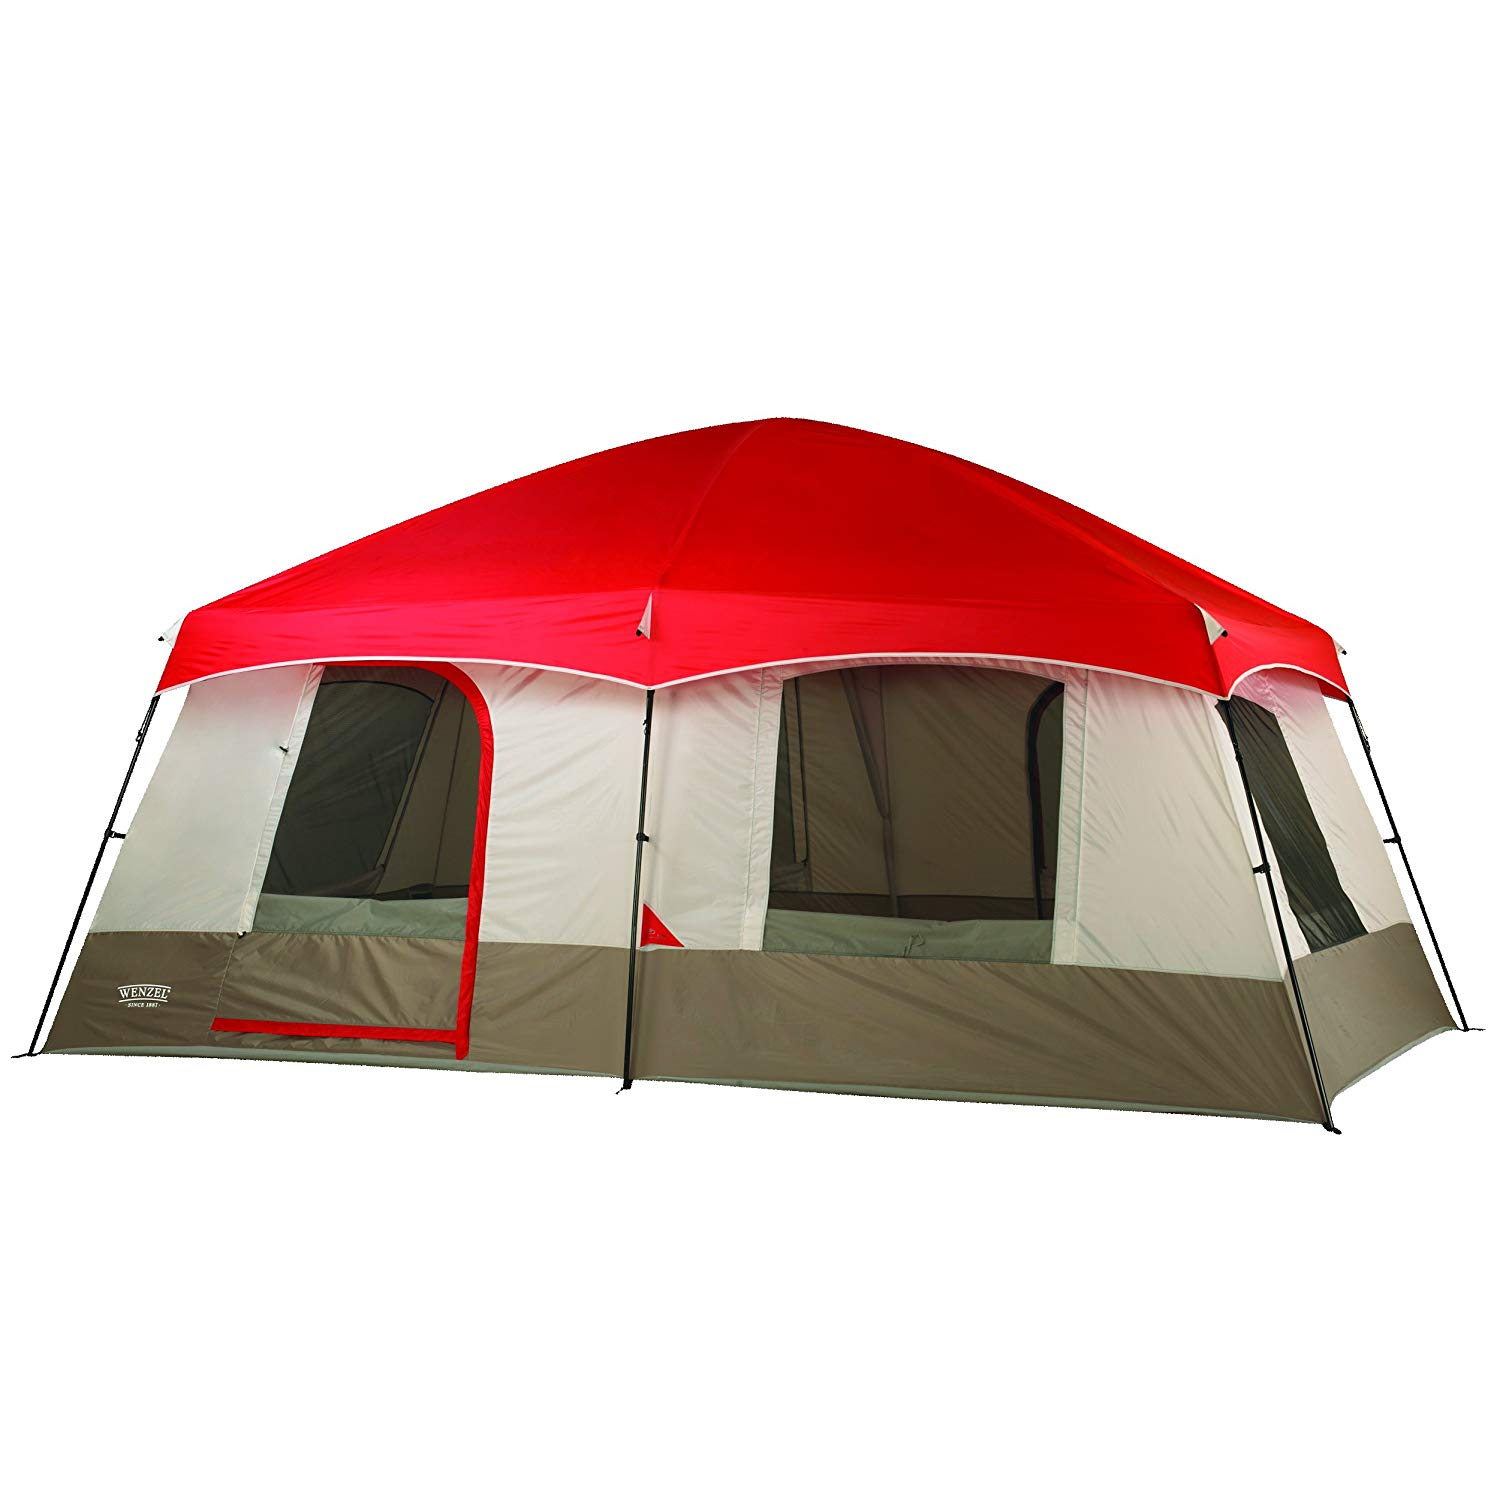 Top 10 Best 10 Person Tent 2021 For The Money Reviews 2